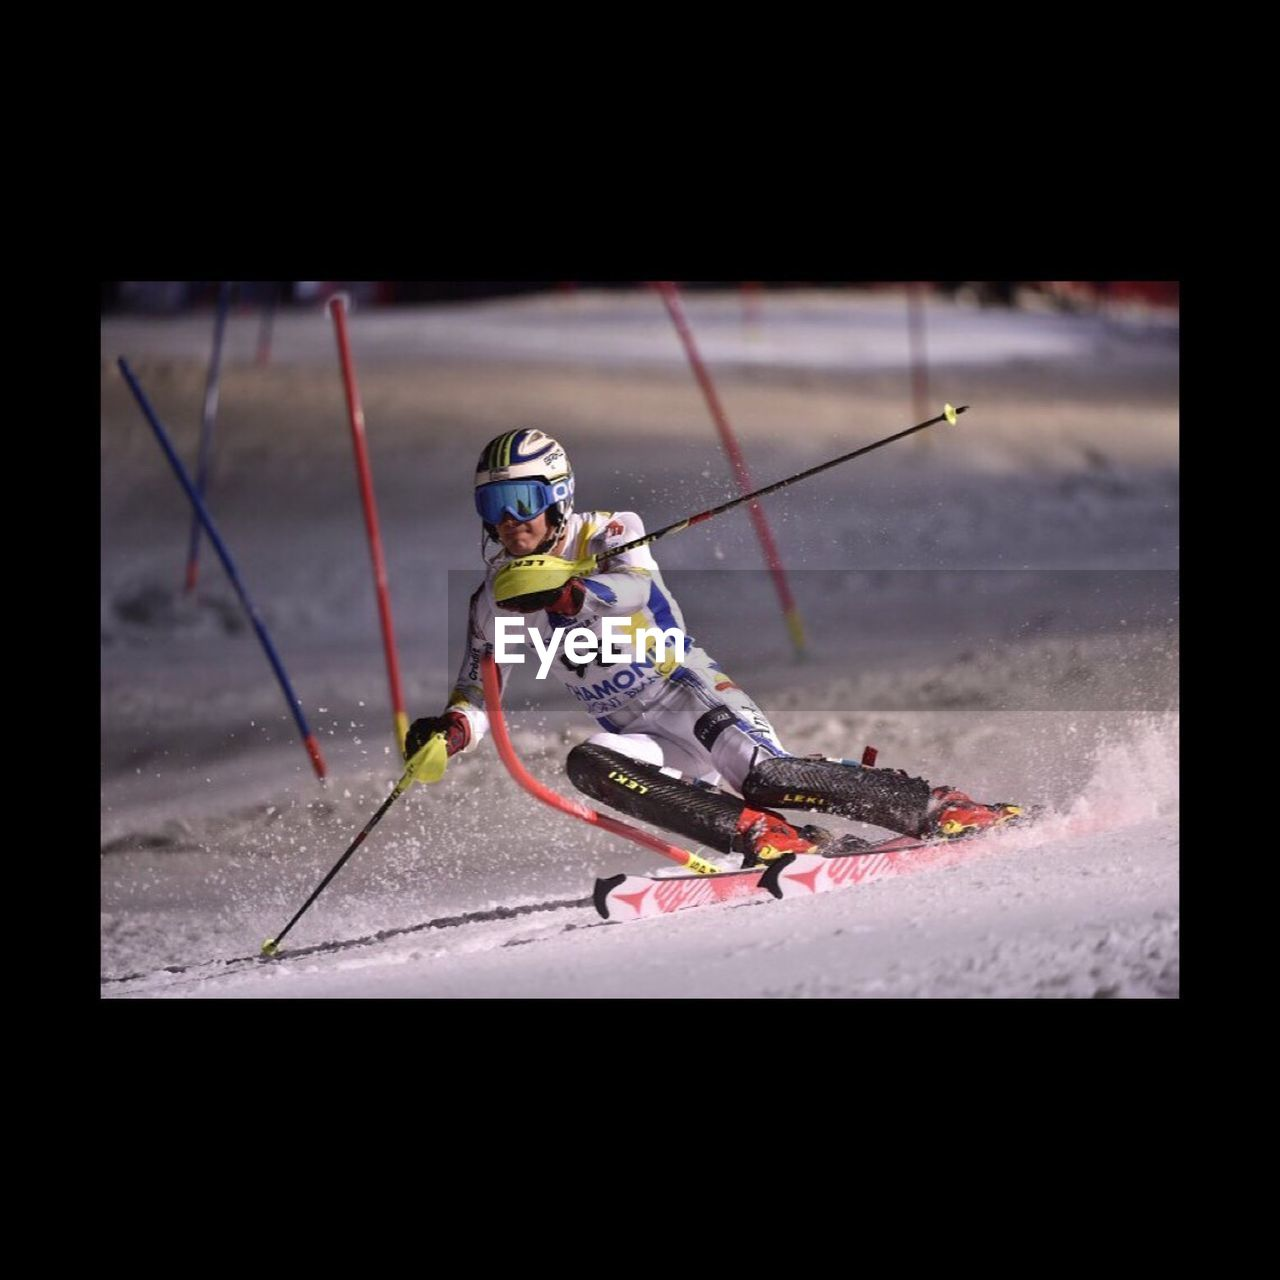 sport, helmet, winter sport, skill, one person, skiing, headwear, full length, crash helmet, sports helmet, outdoors, adventure, agility, extreme sports, snowboarding, winter, men, day, one man only, sports clothing, adult, sportsman, people, adults only